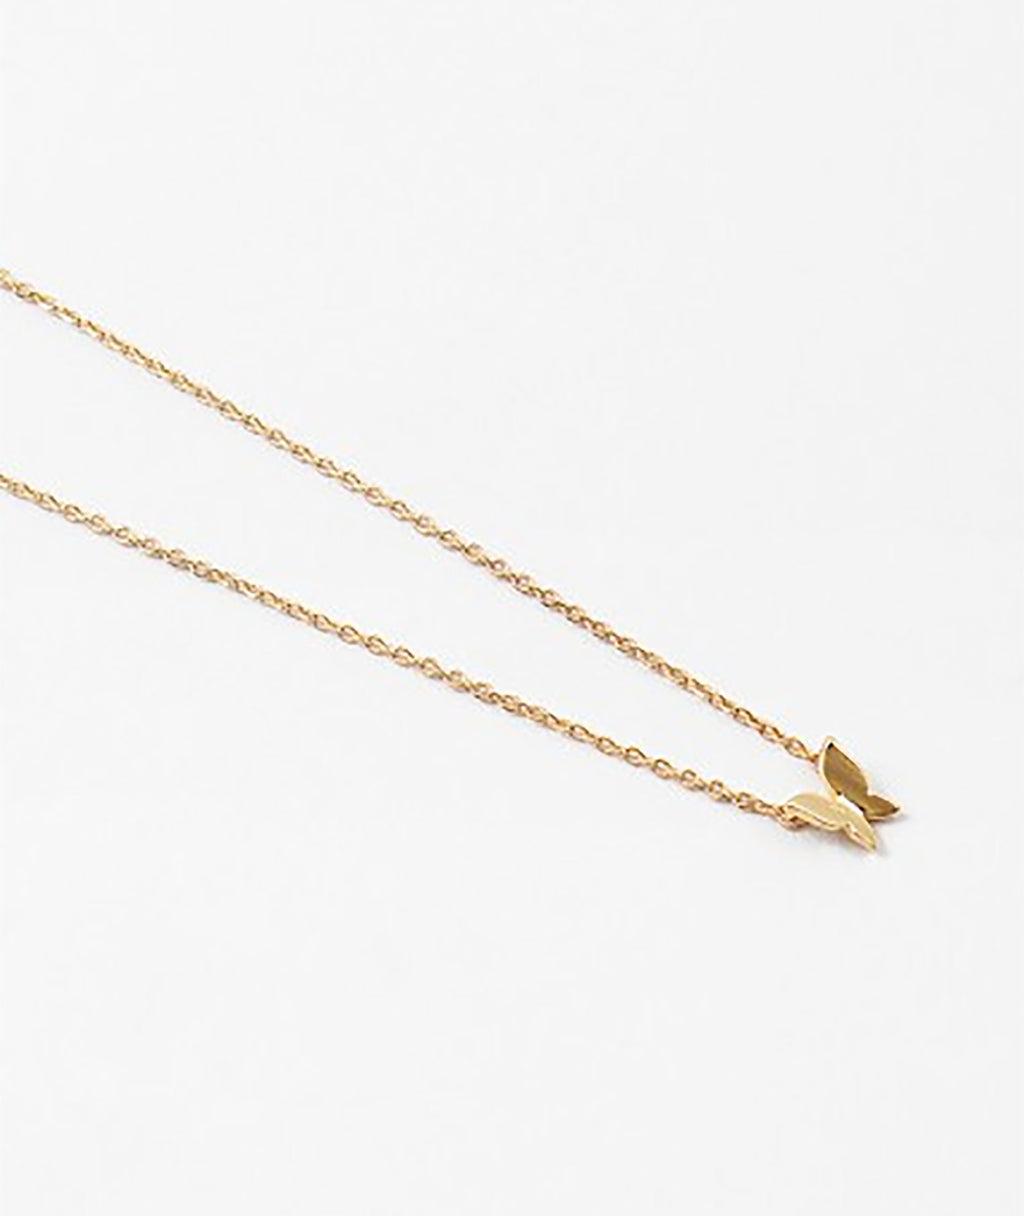 Fashionista J Gold Butterfly Necklace